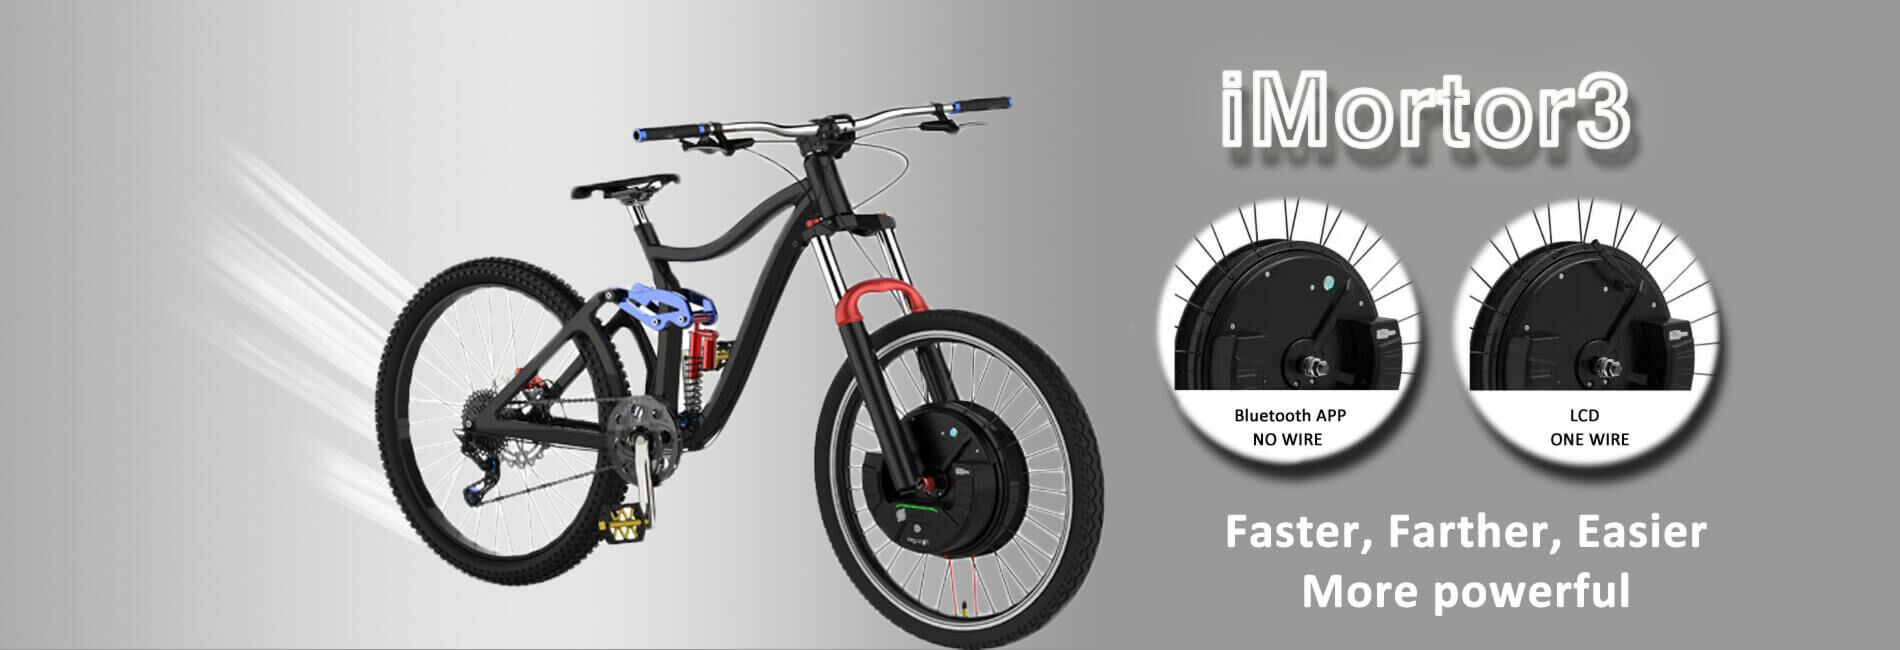 https://www.elecycles.com/2019-newest-imortor3-0-all-in-one-e-bike-conversion-kit.html